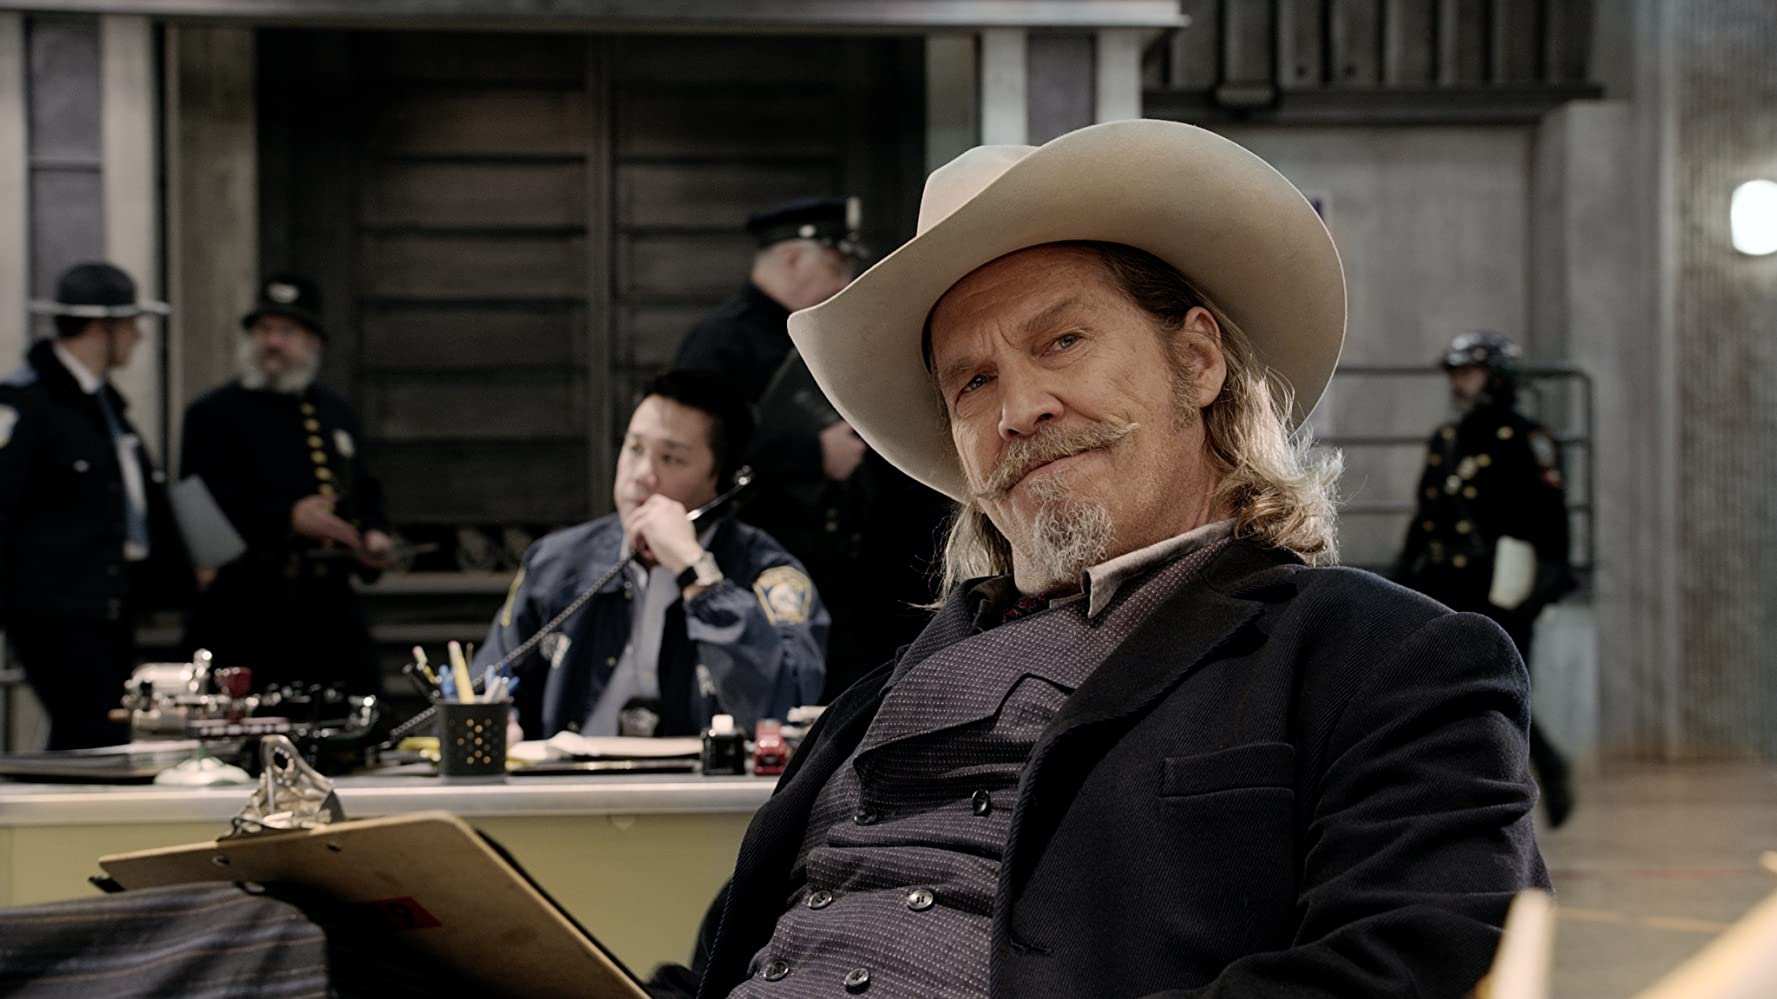 Jeff Bridges in R.I.P.D. (2013)